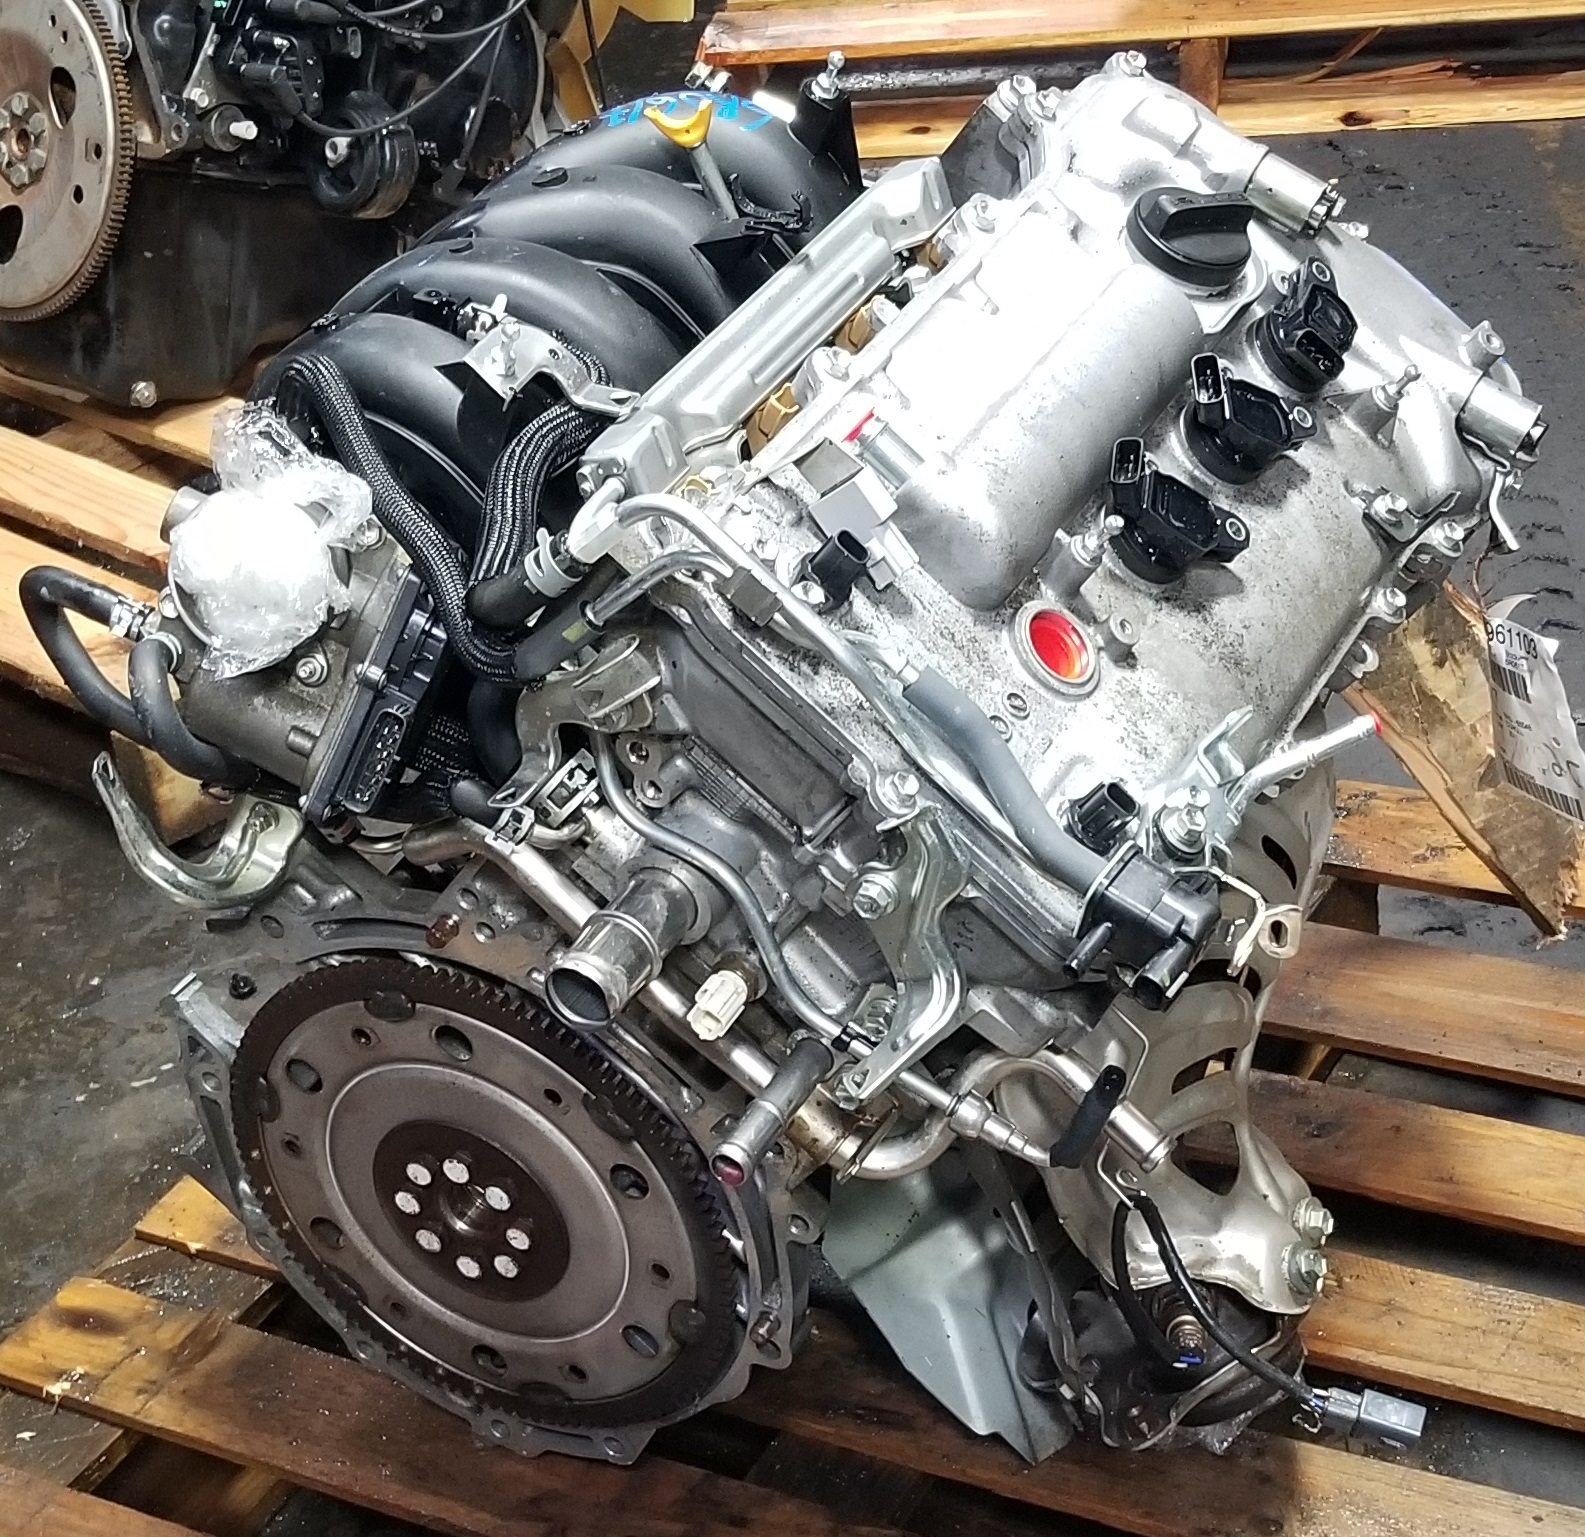 Toyota Corolla engine 11 2.14.19